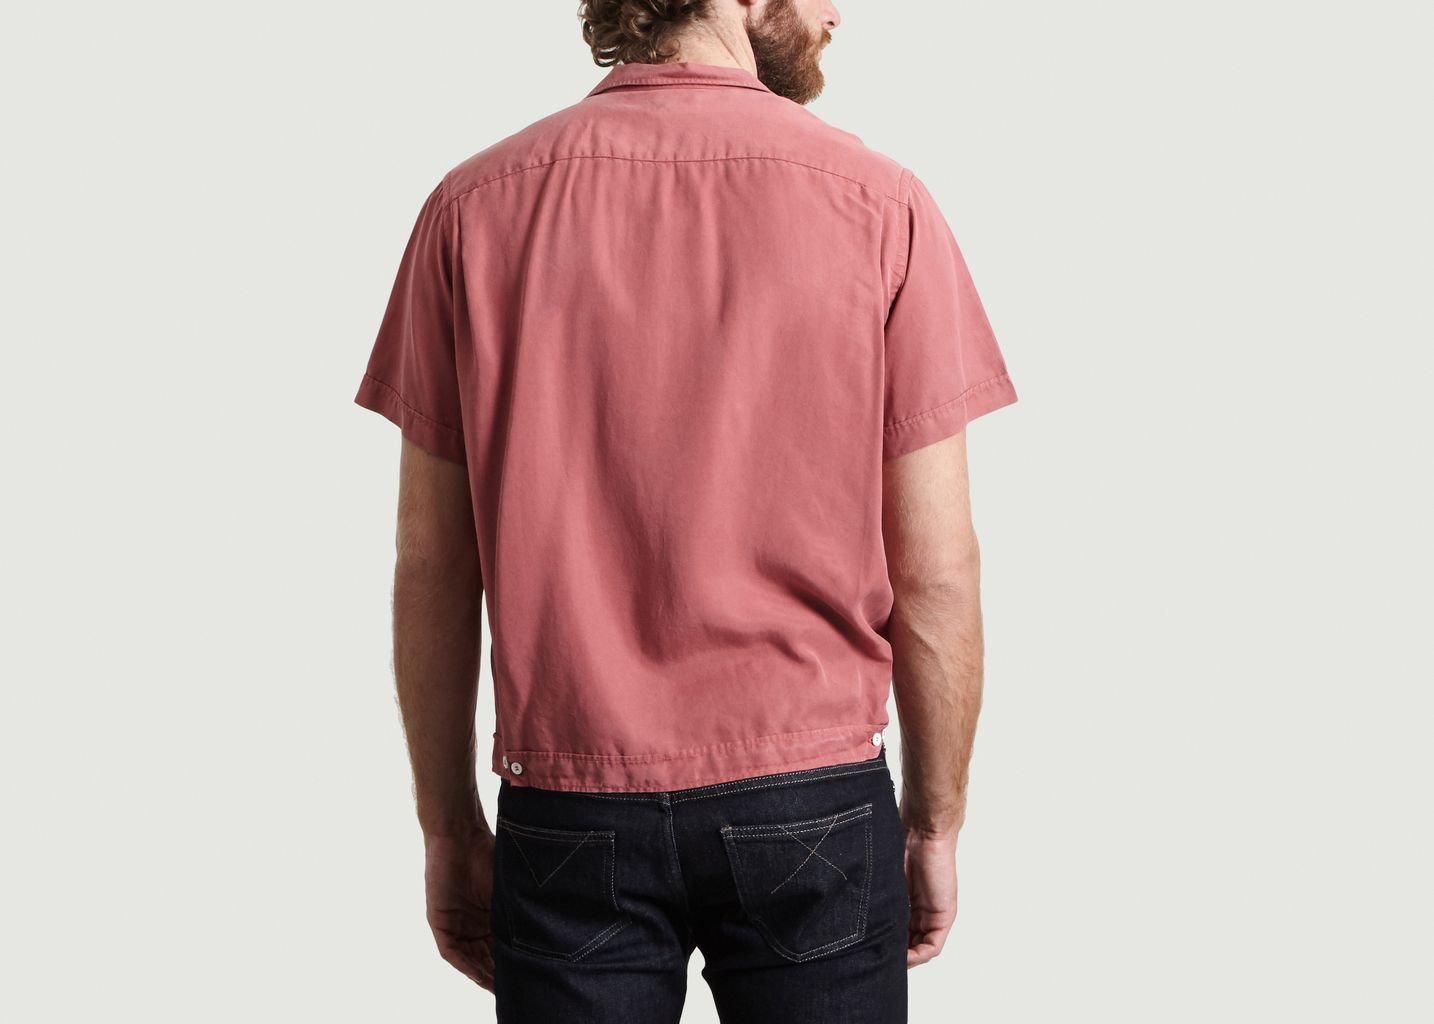 Chemise En Tencel Manches Courtes Willy - Editions M.R